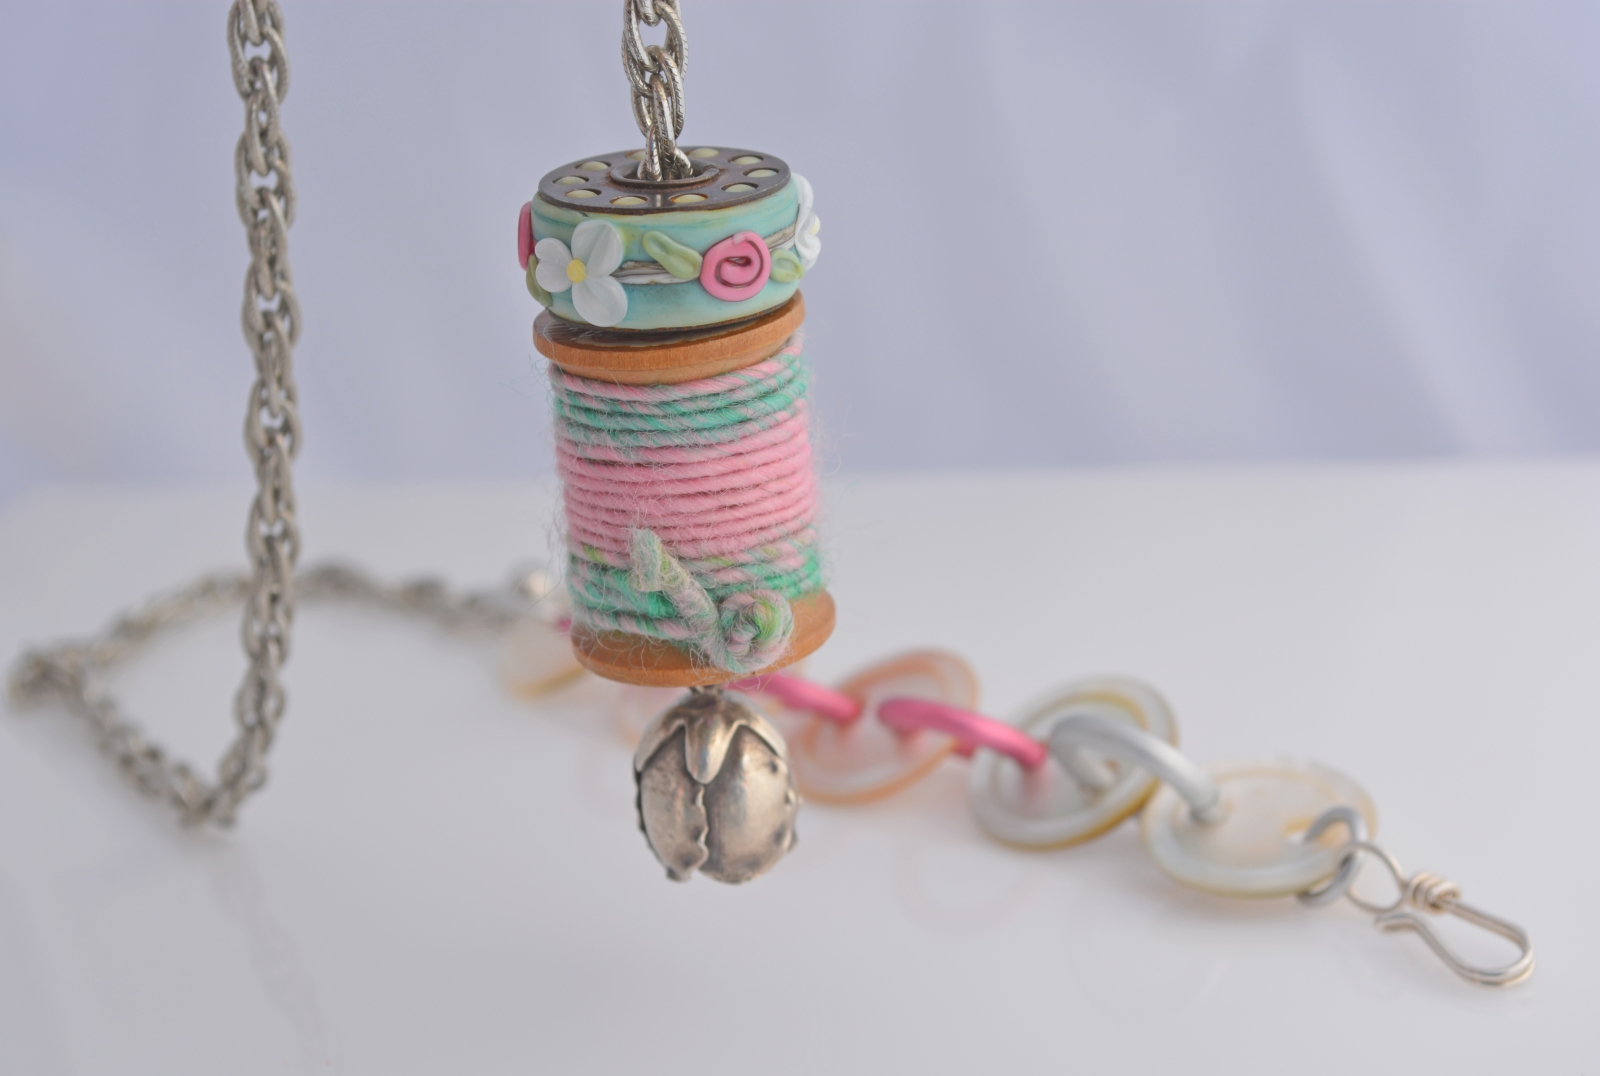 Quilter's Artisan Necklace - Lampwork, wooden spool